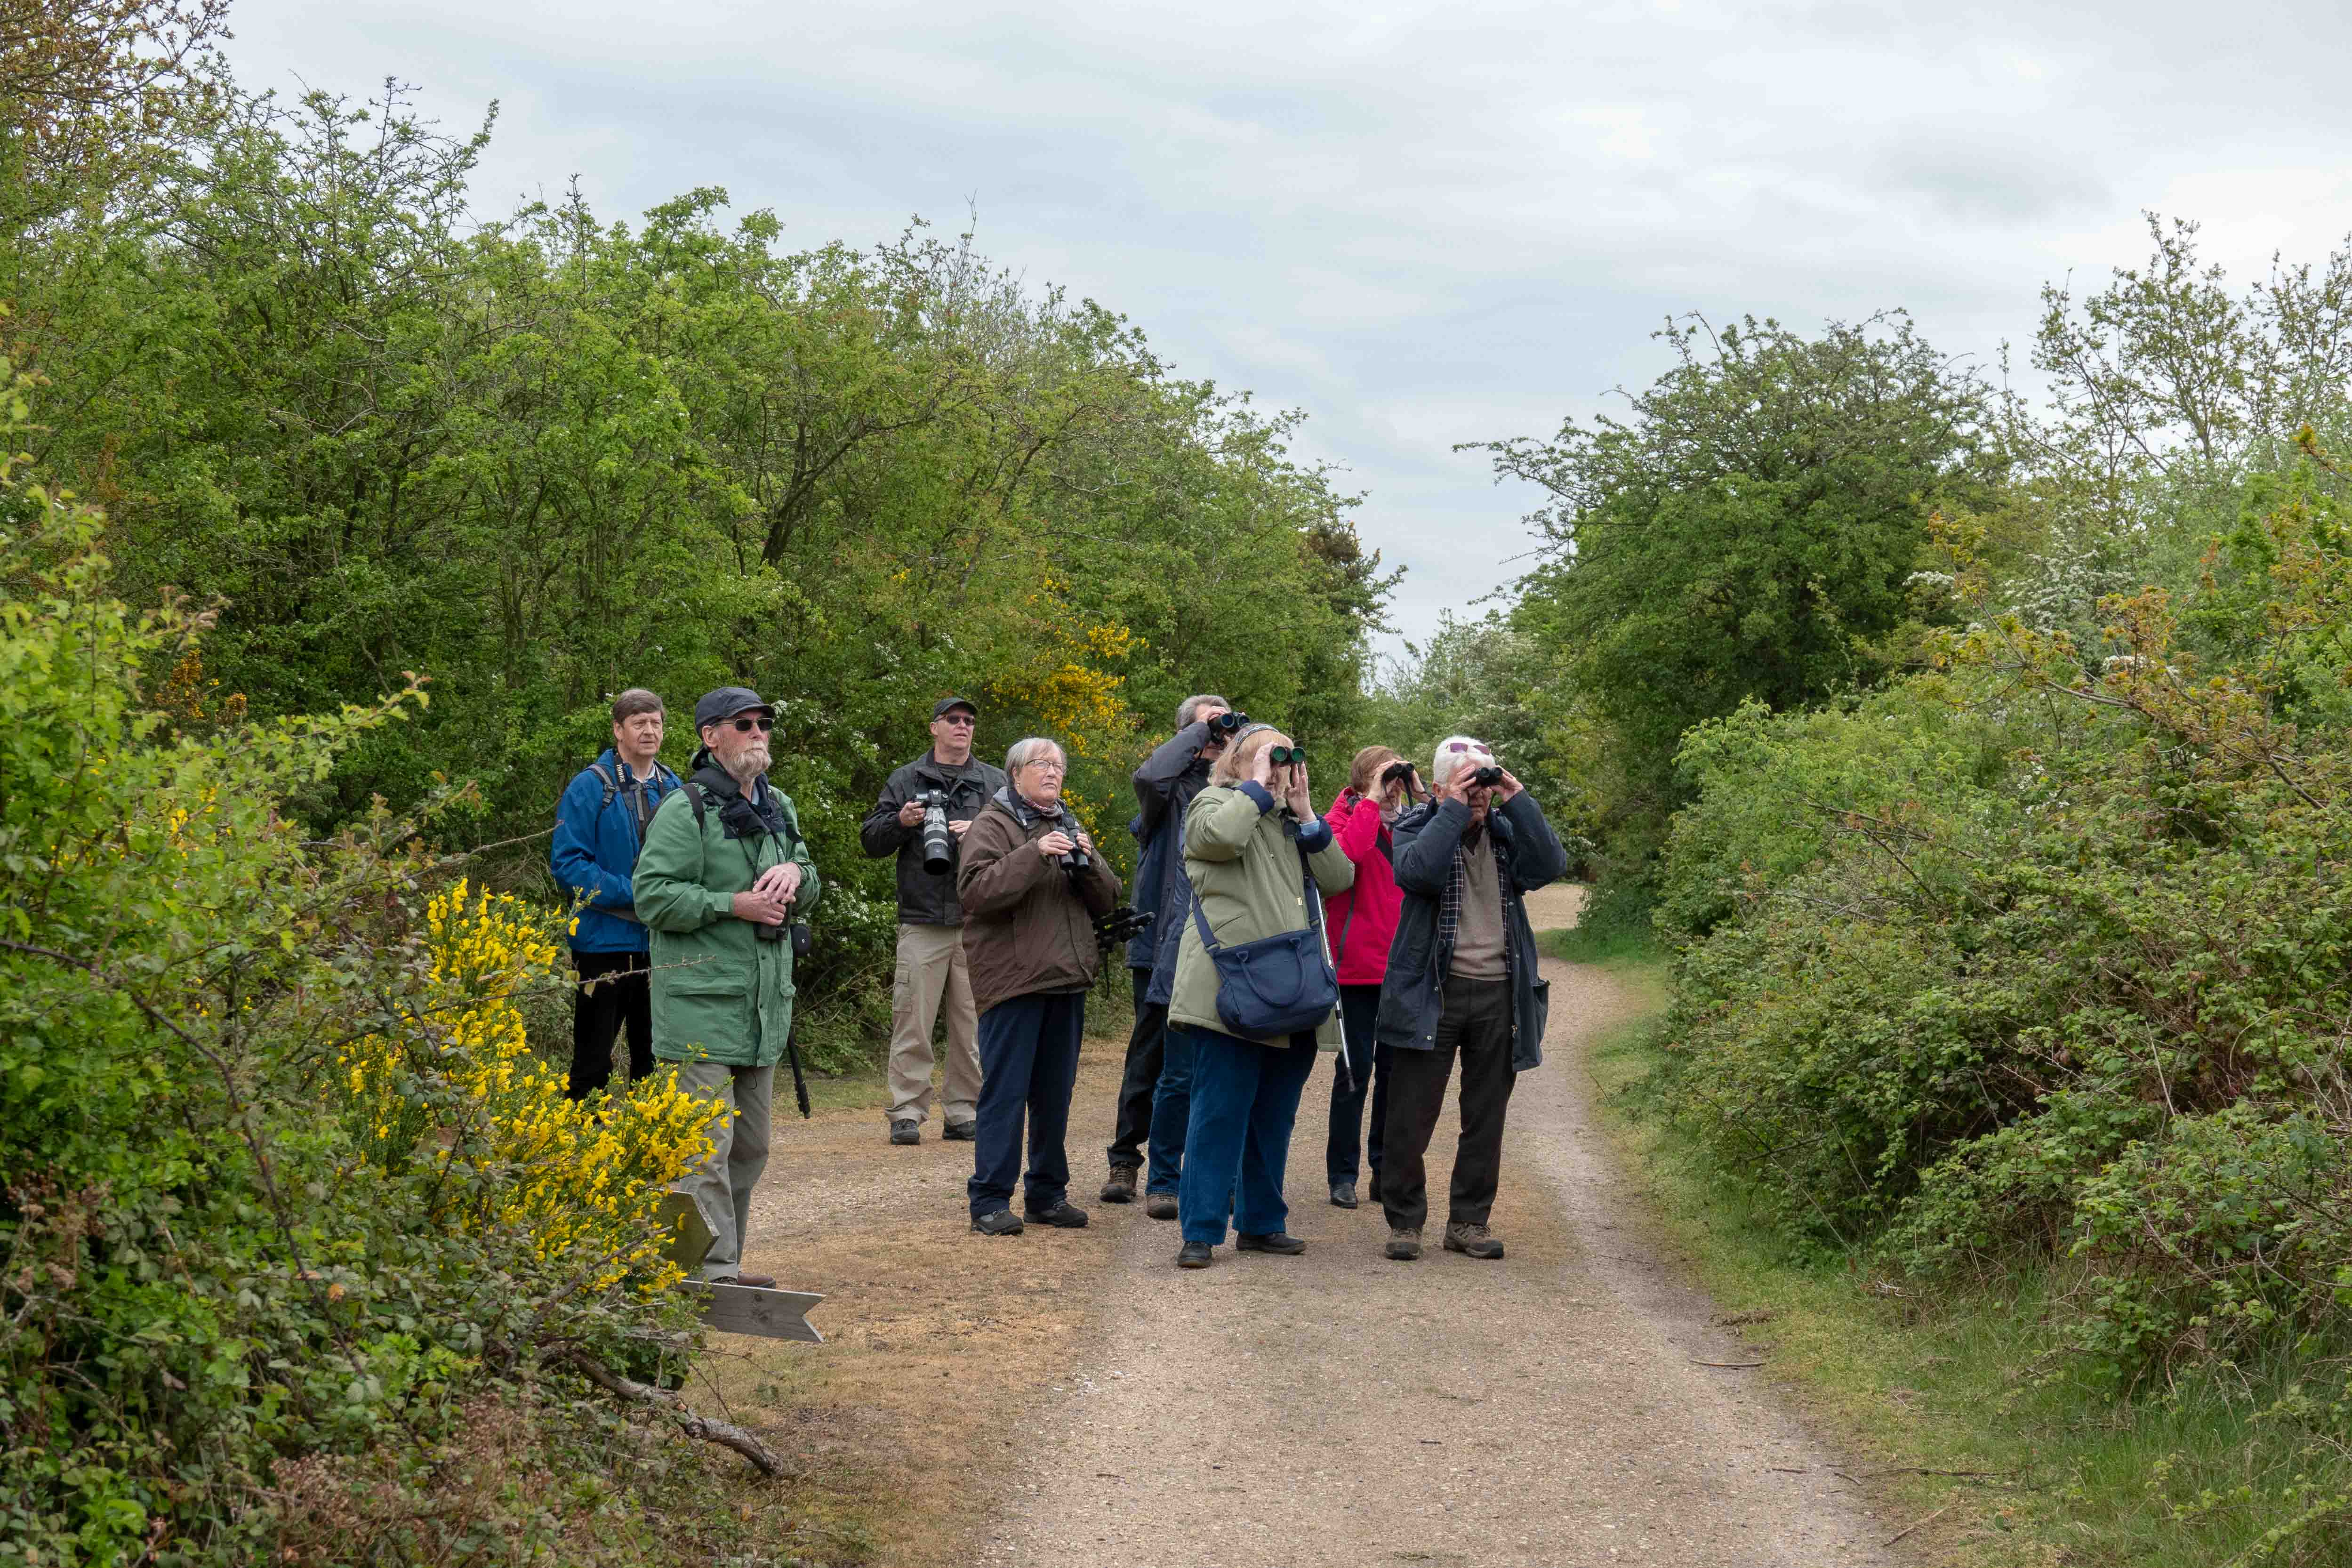 At Fingringhoe Wick May 19